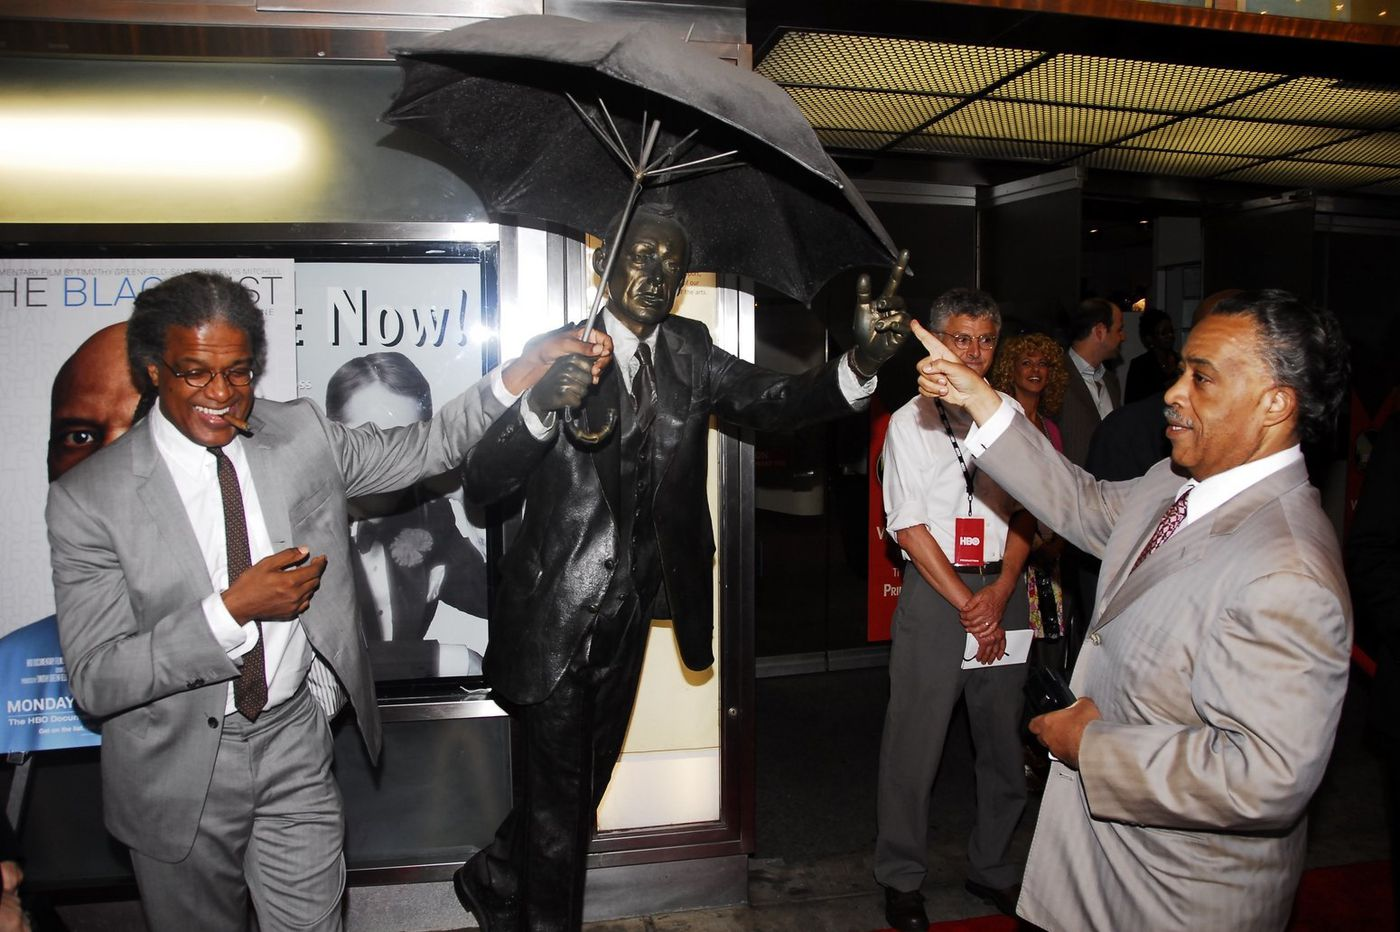 Where is the Umbrella Man statue that used to reside outside the Prince Theater?